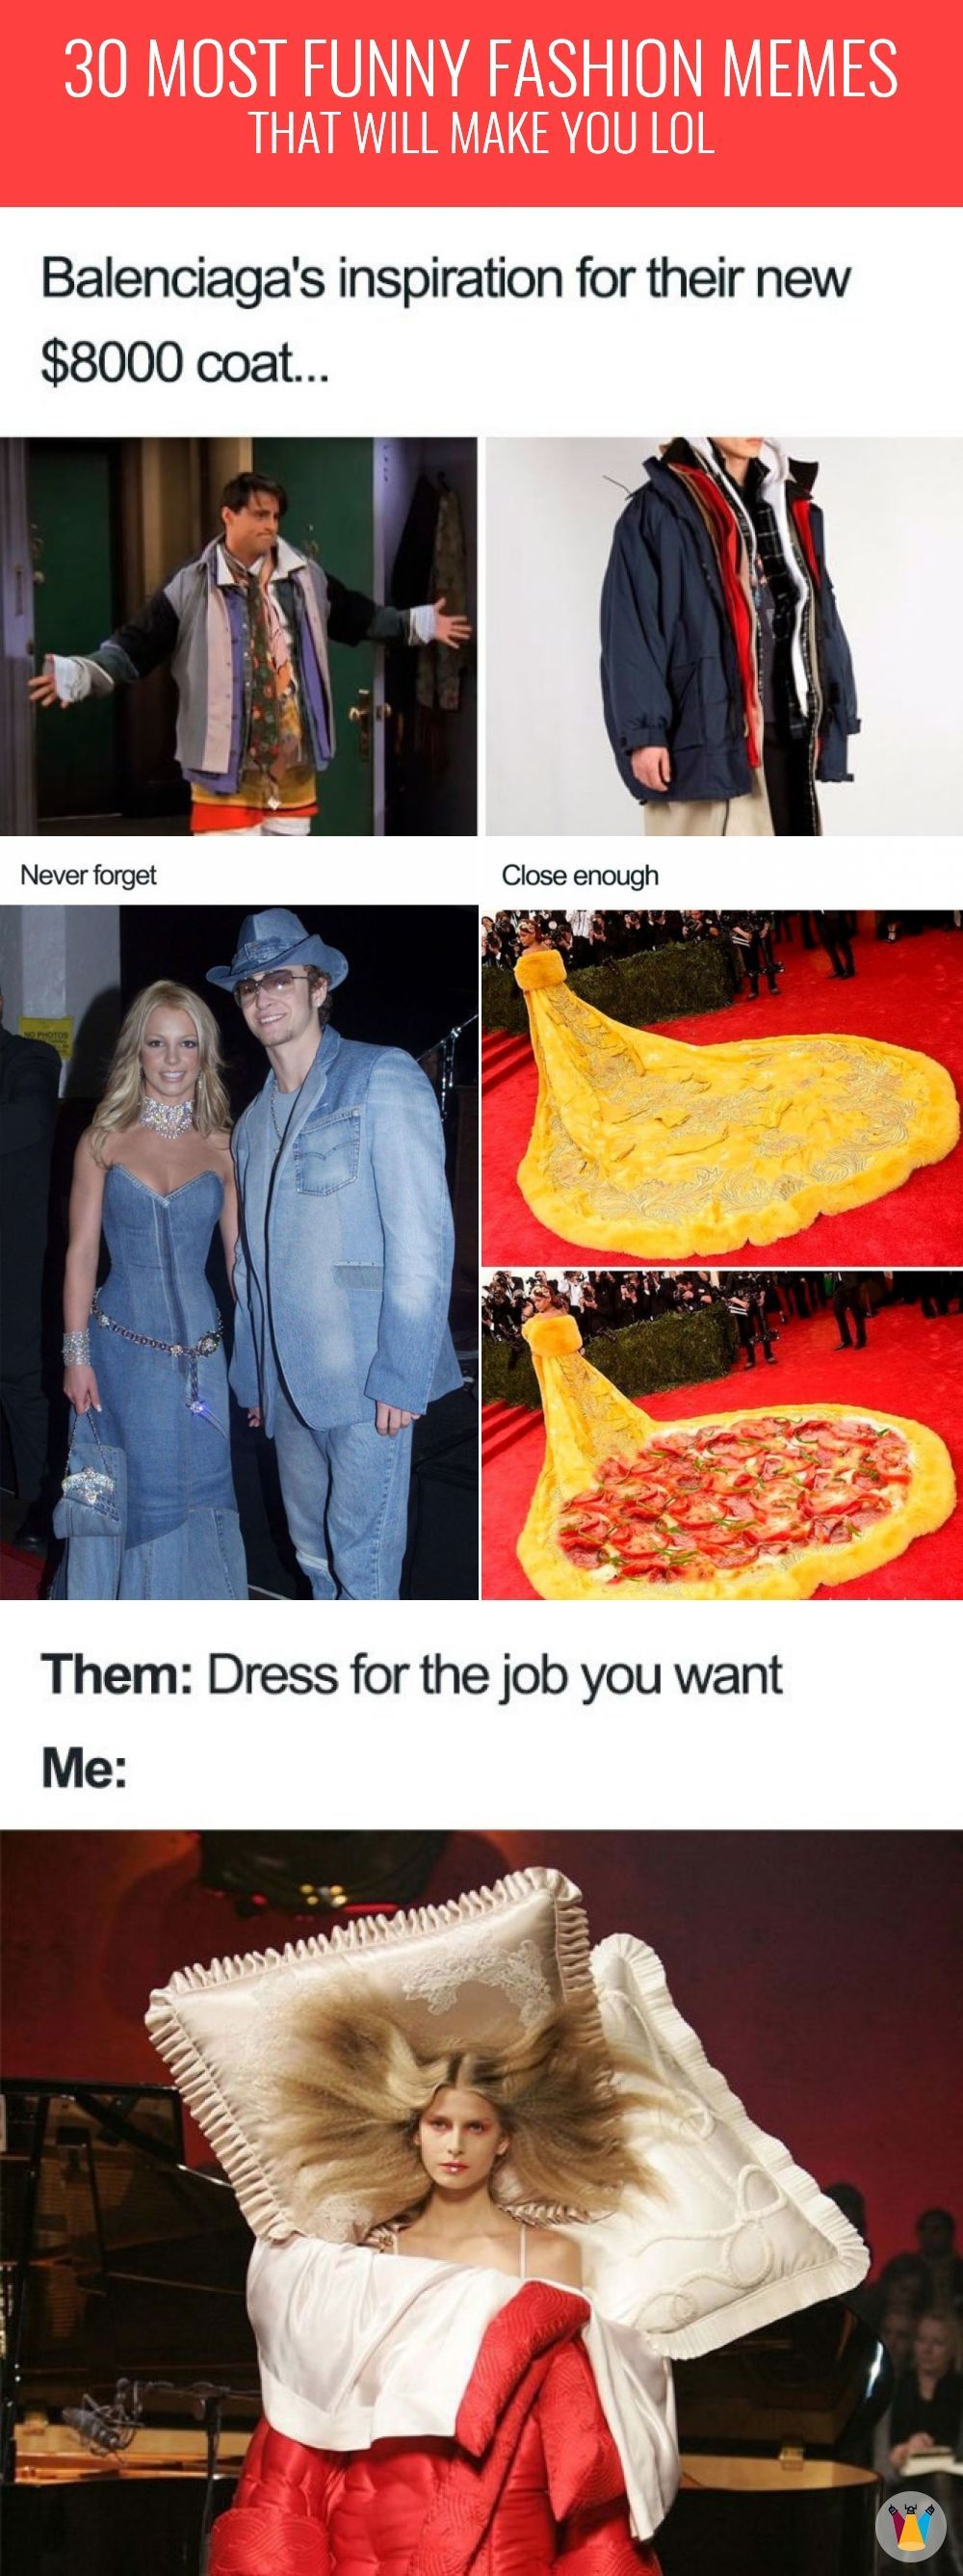 Listed Her Are 30 Most Hilarious Fashion Memes That Will Make You Laugh Out Loud Funny Funnypics Funnypictures Entertai Funny Fashion Fashion Fail Fashion [ 2674 x 1000 Pixel ]